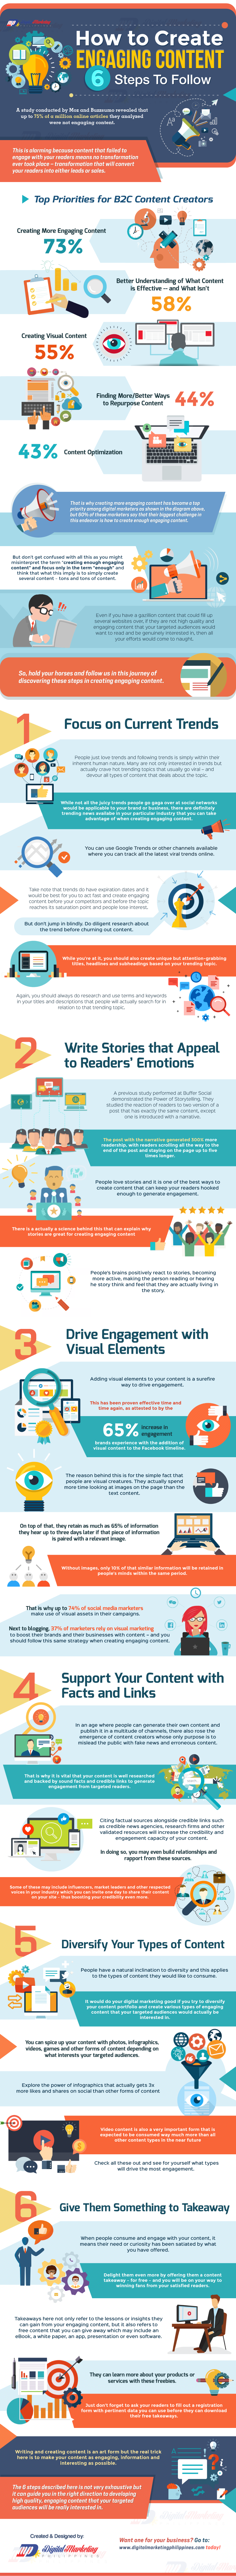 How to Create Engaging Content – 6 Steps to Follow